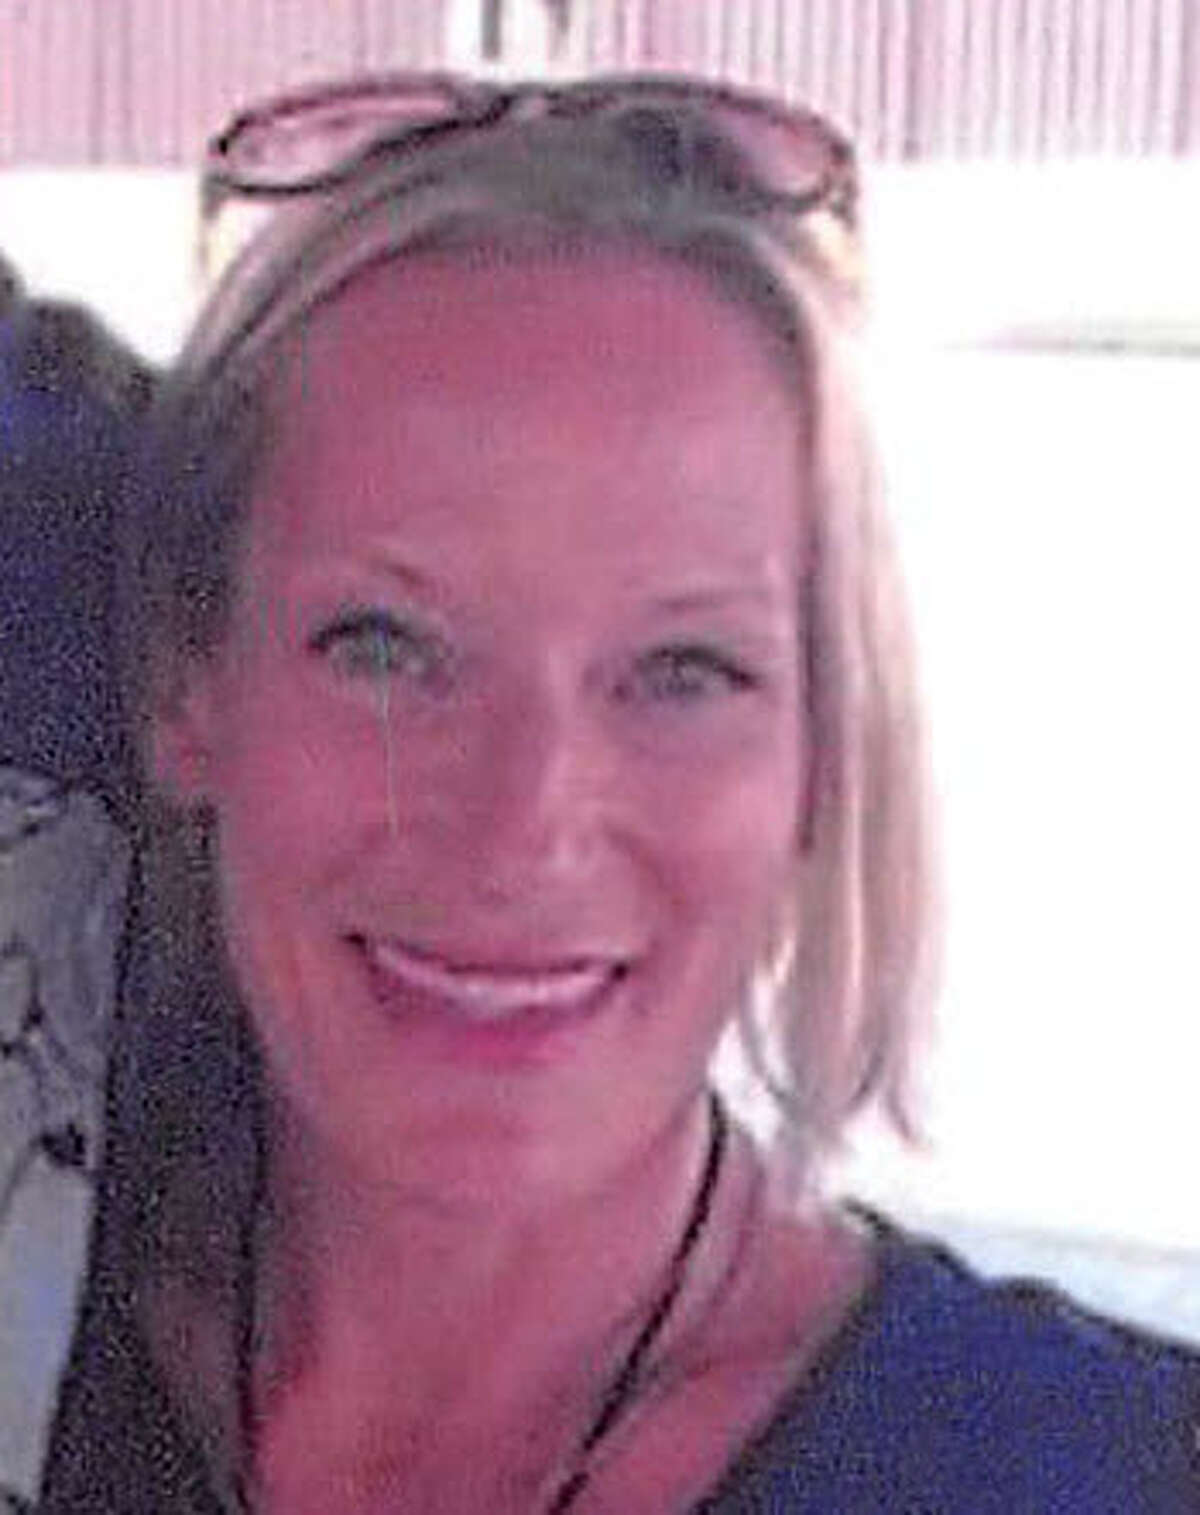 Name: Vianne Kathleen Whitt, AKA ViAnne Beierle Date of birth: Sept. 16, 1973 Last seen: June 19, 2019, in Houston More: Whitt has scars on both forearms, wears dentures and has a daisy chain tattoo on her right ankle. She was possibly last in Houston or The Woodlands. Possible destination is unknown.